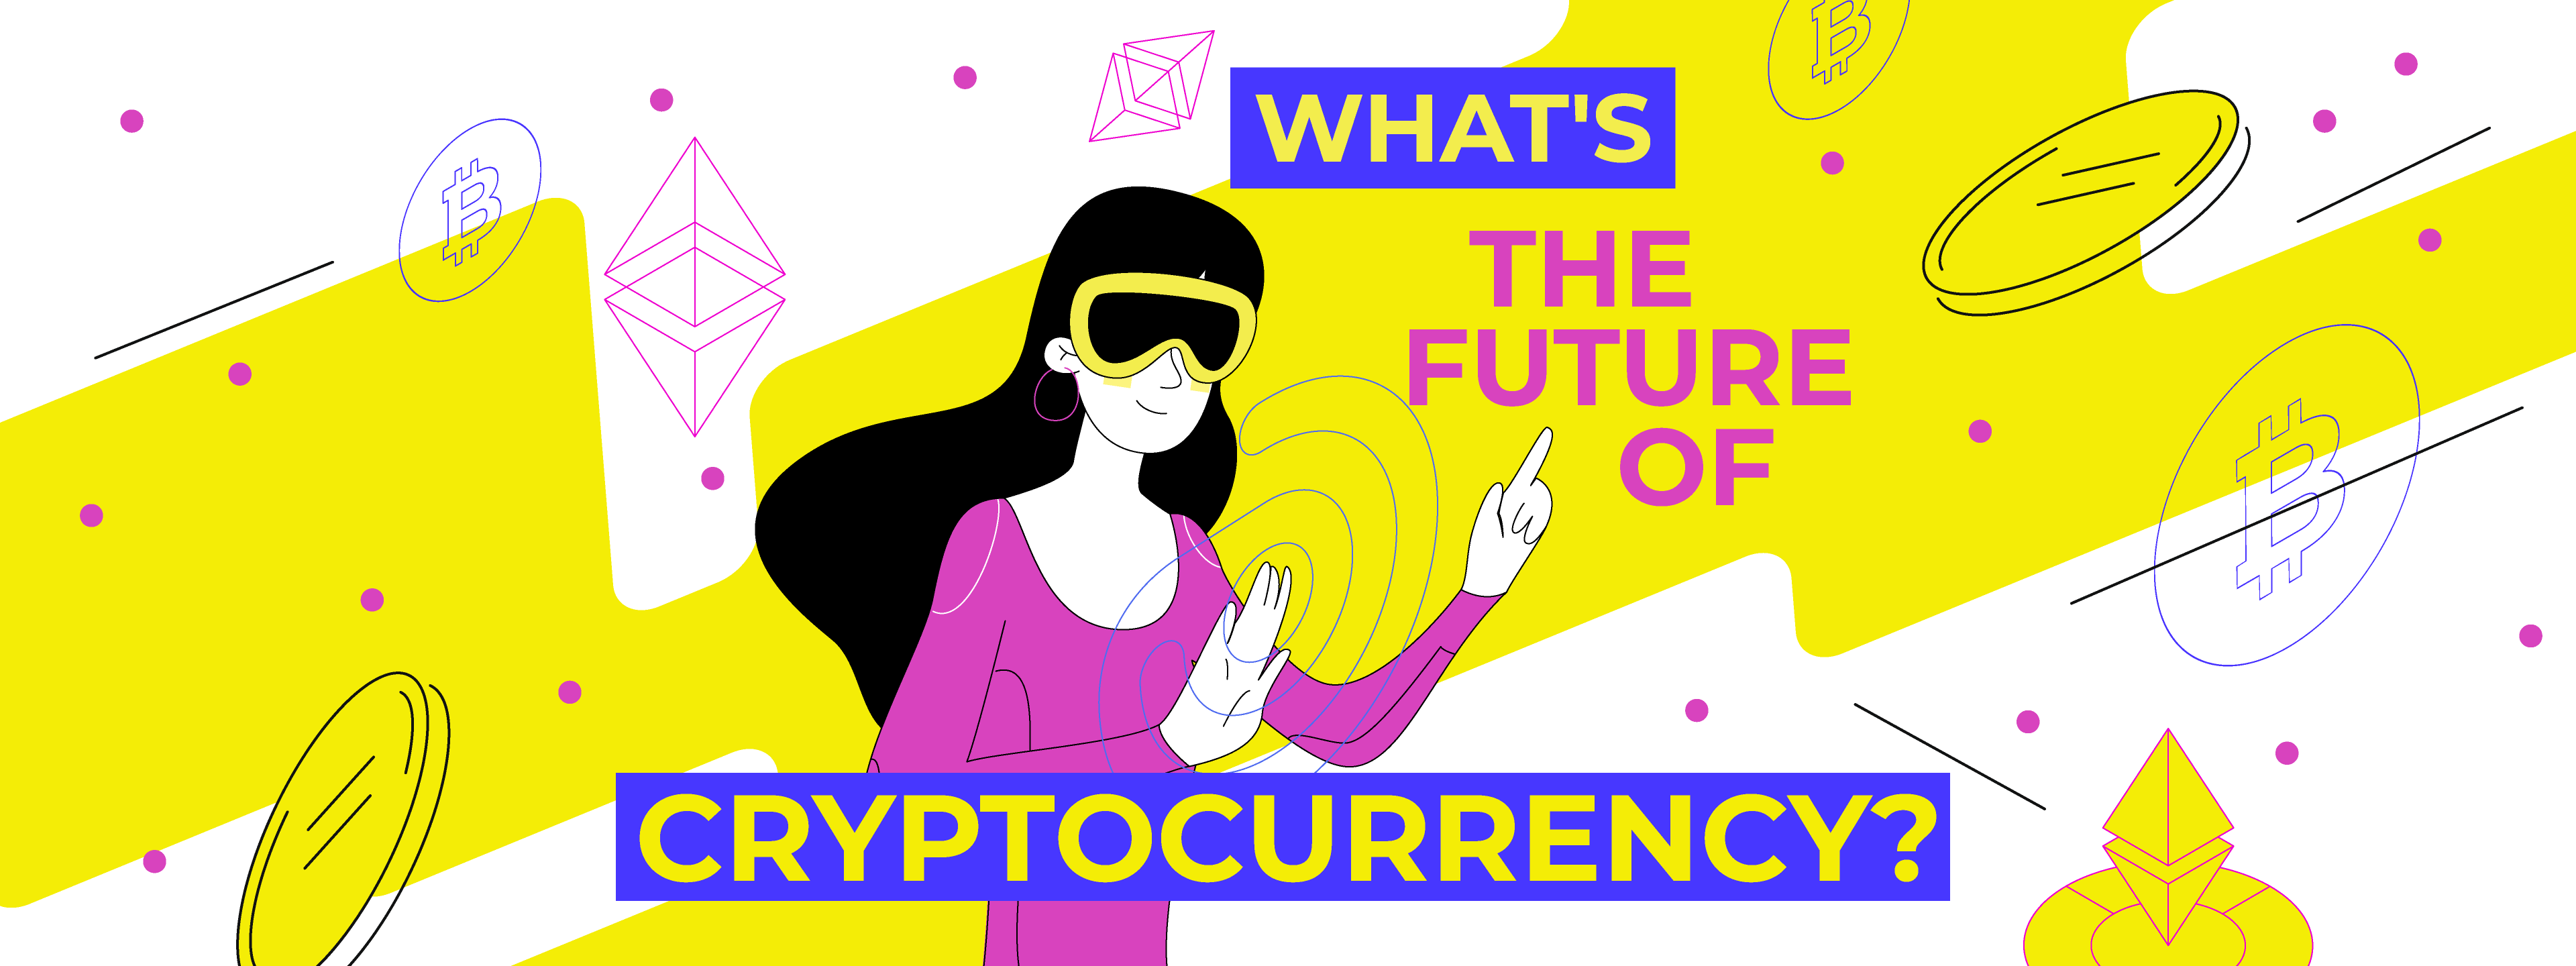 What's the Future of Cryptocurrency?